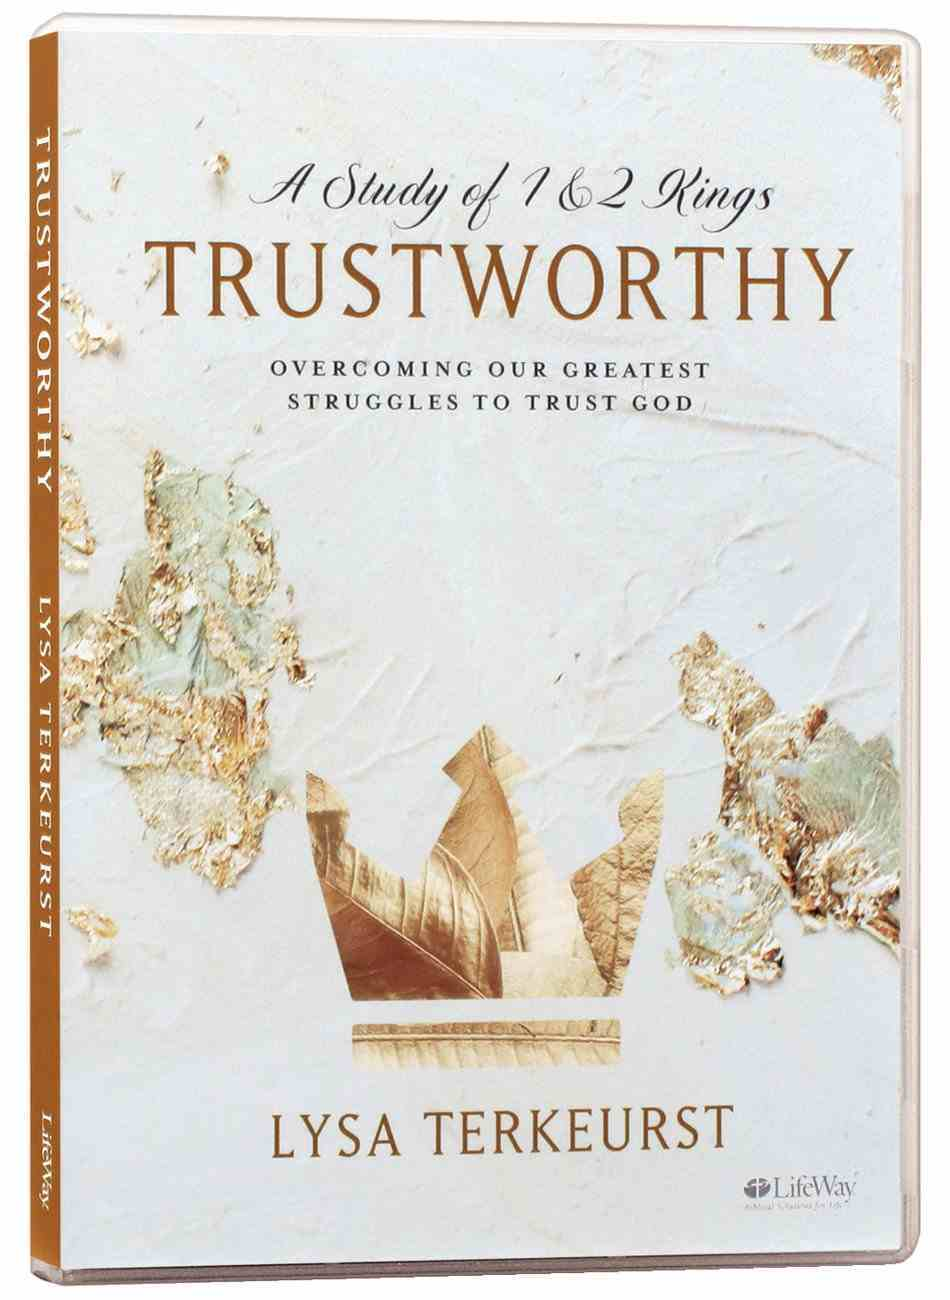 Trustworthy: Over Coming Our Greatest Struggles to Trust God (2 Dvds) (Dvd Only Set) DVD